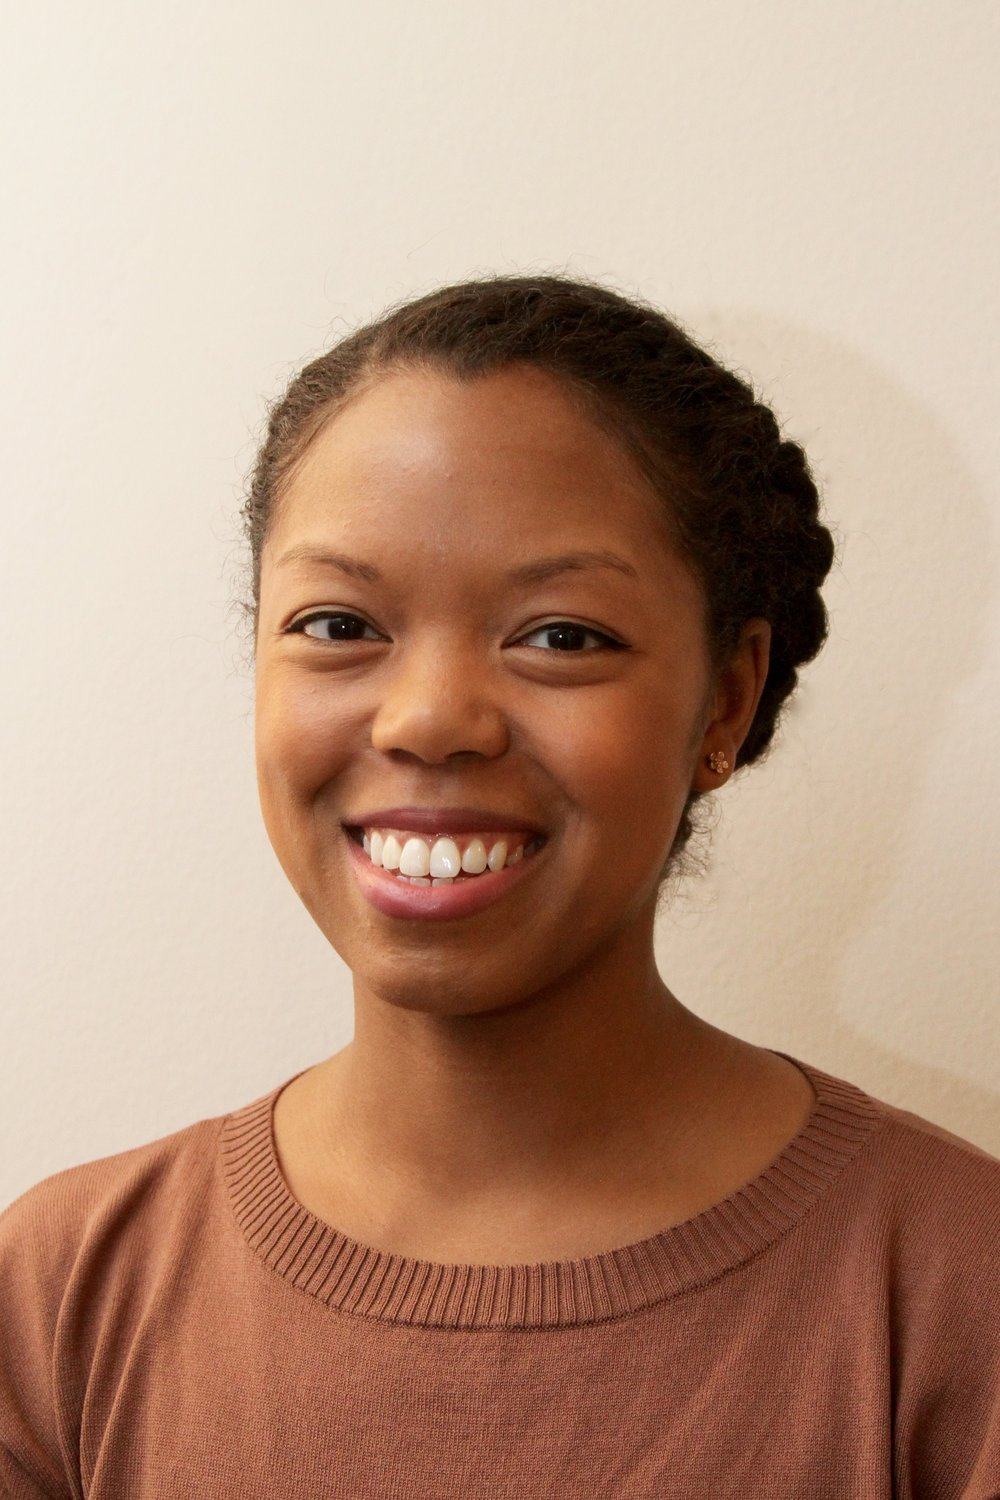 Jessica Douthit - Role: MentorJessica was born outside of Philadelphia, PA and received her degree in 2011 from Temple University. As an undergraduate student, she participated in the Minority Access to Research Careers program where she learned the importance of mentorship and extending a hand to those who follow behind you. She is currently a seventh year MD/PhD Candidate in Dr. Jessica Treisman's lab. Jessica is interested in brain development and genetics.